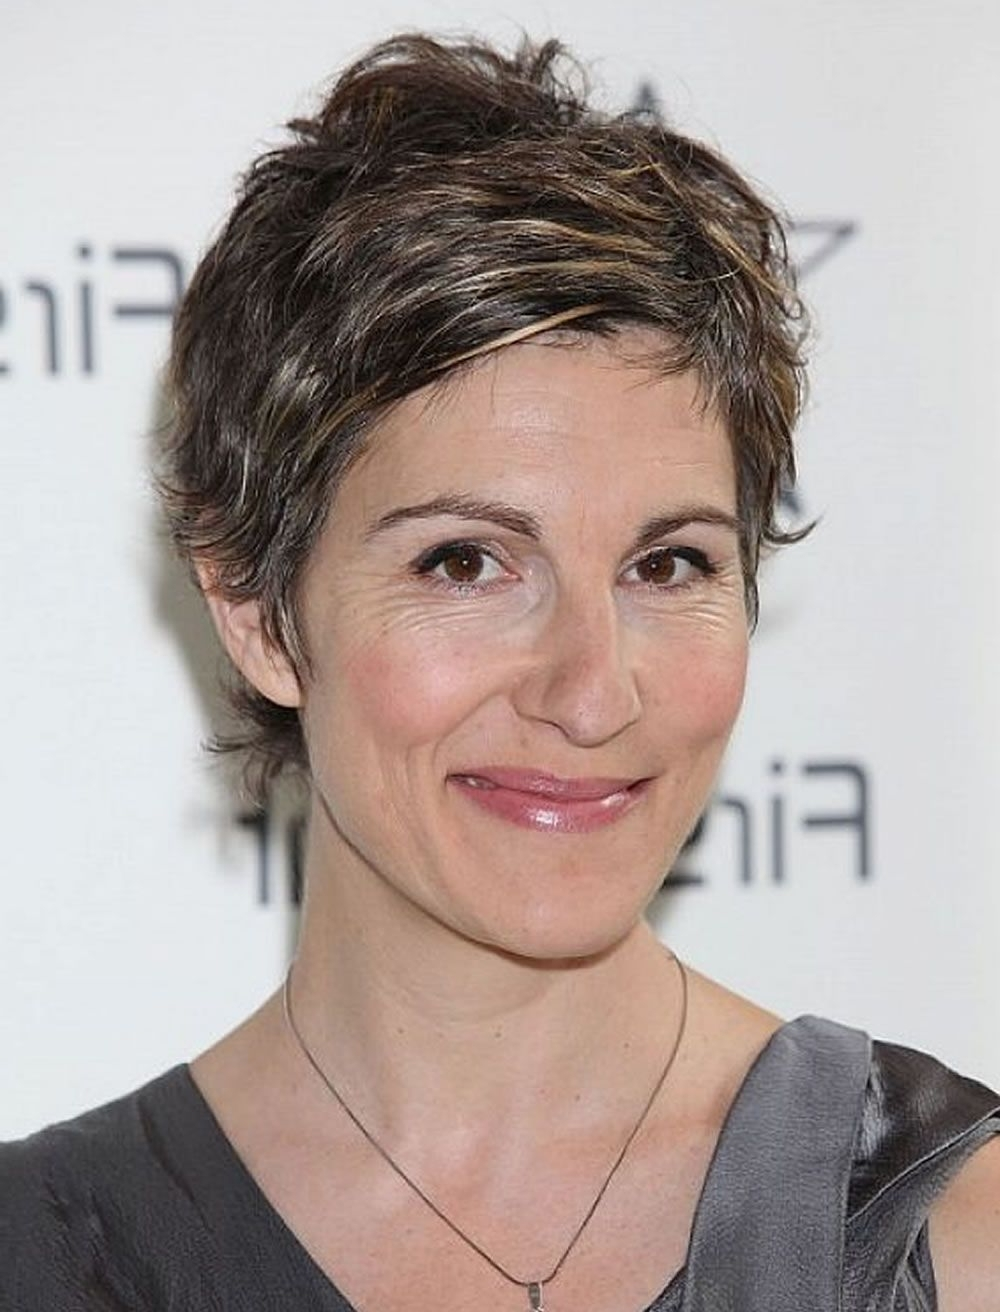 Image Result For Wavy Pixie Cut For Older Woman | Short Curly Regarding Current Pixie Hairstyles For Older Women (View 6 of 15)